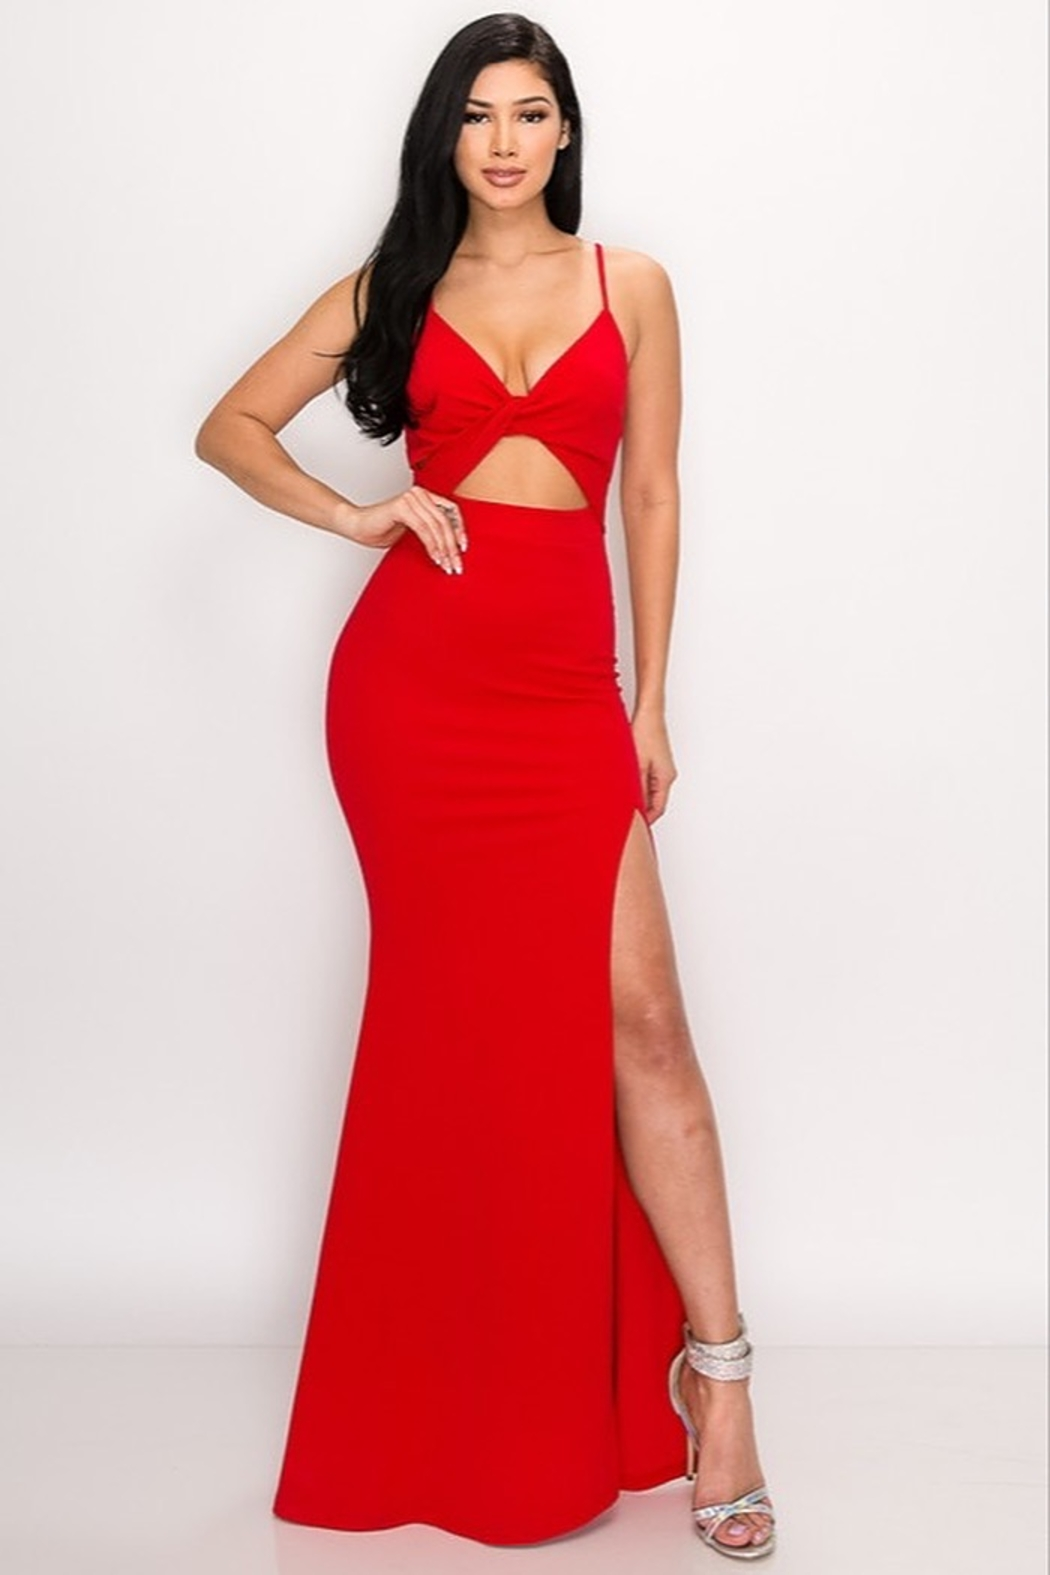 privy Red Hot Gown - Main Image